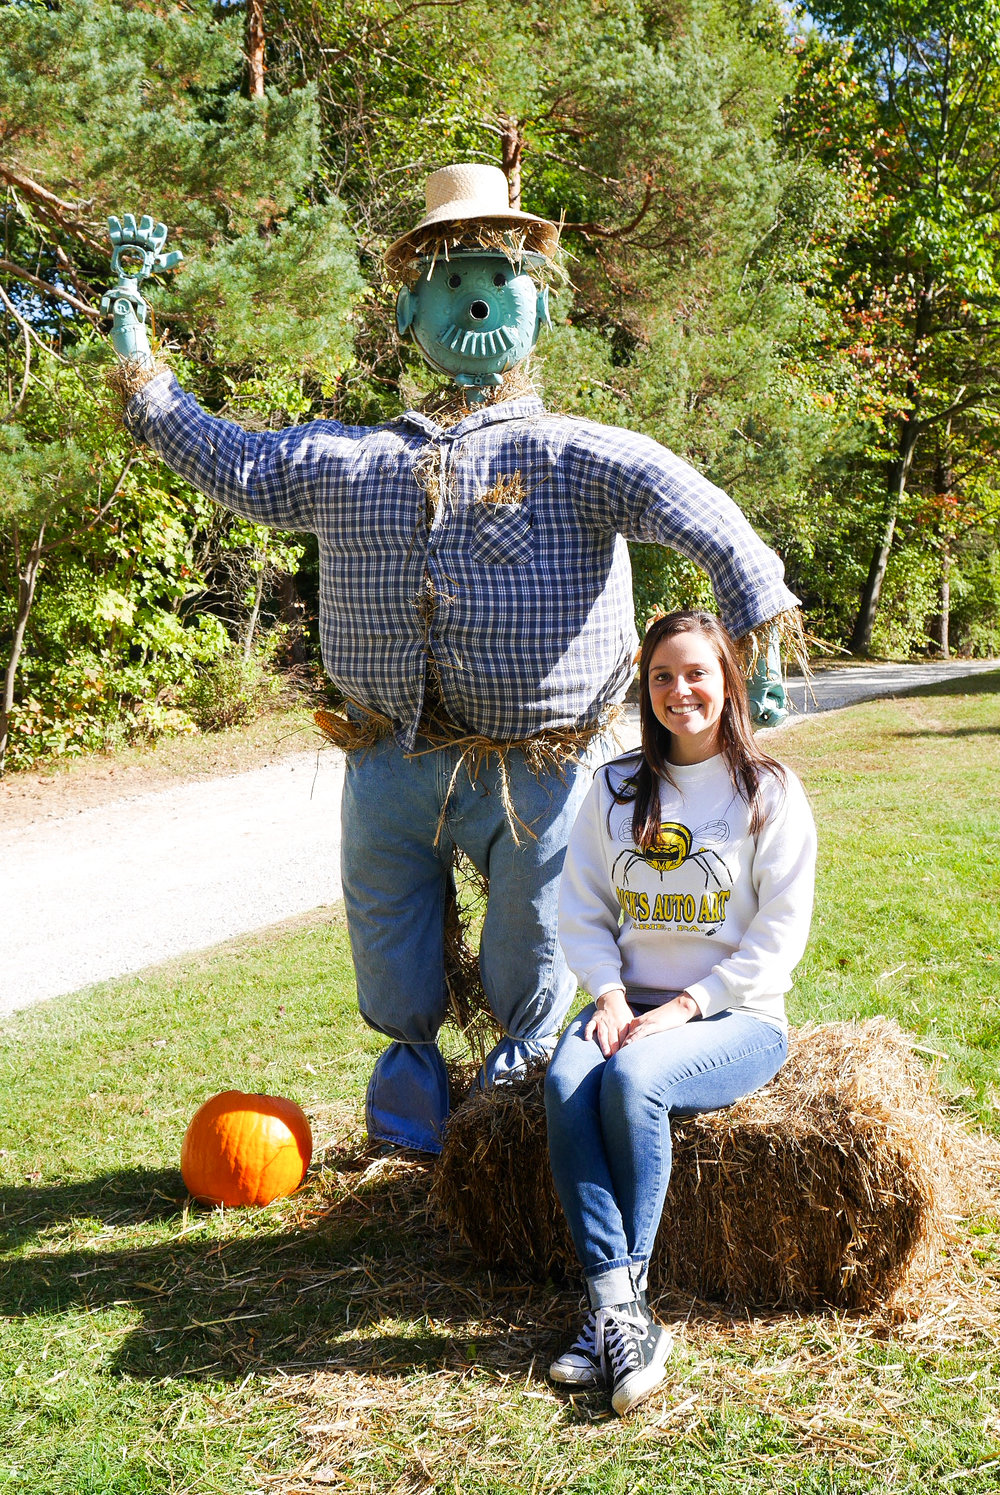 Automan dressed up as a Scarecrow